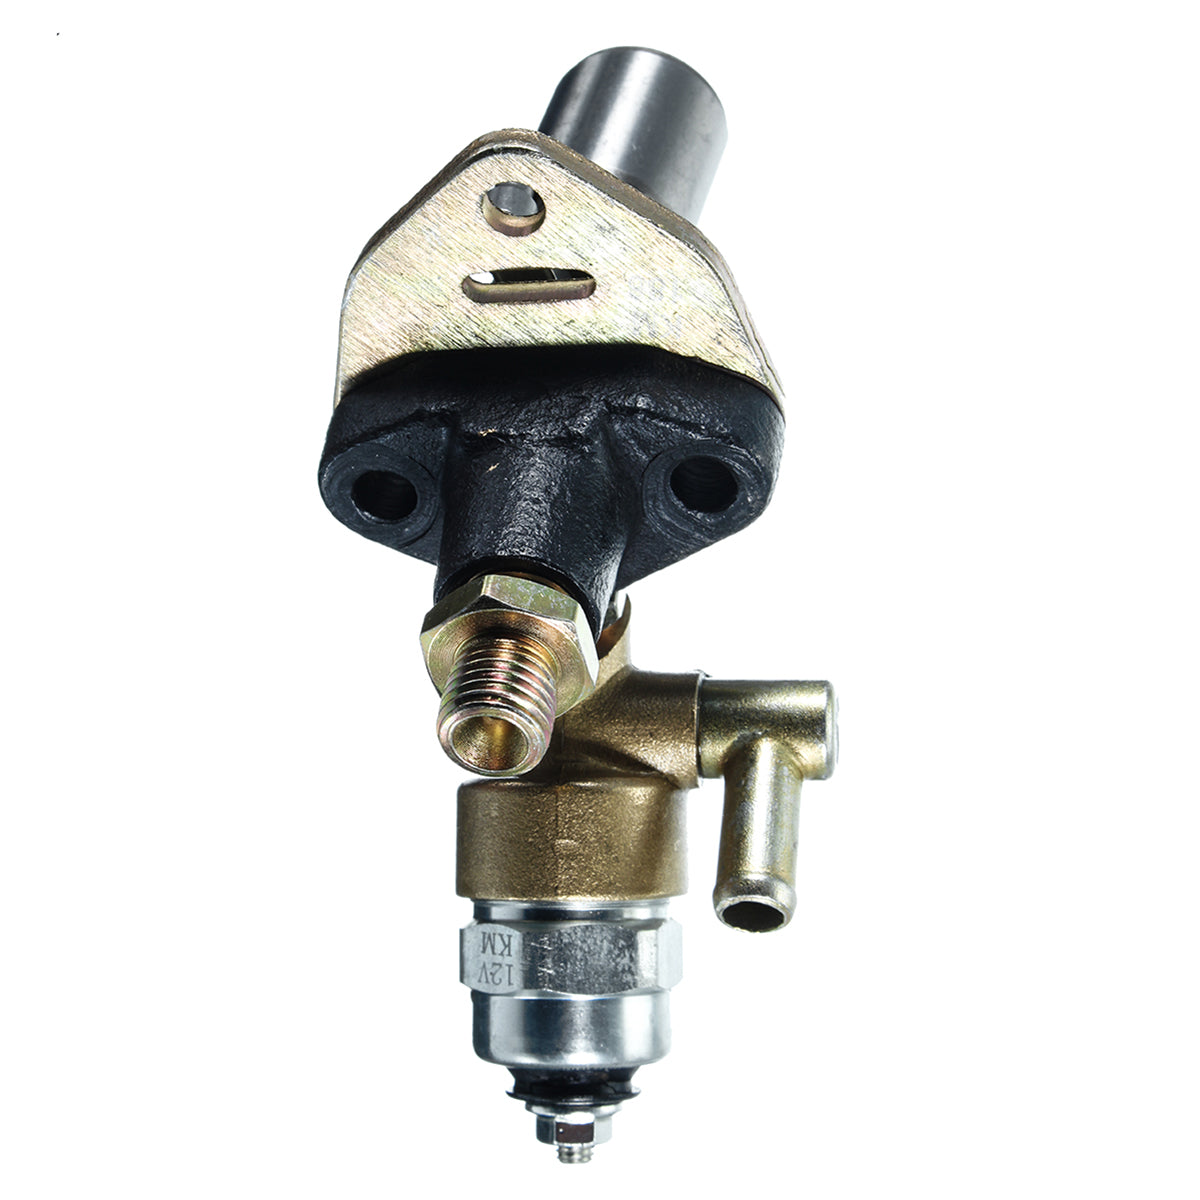 Other Tools & Kits - Fuel Injector Injection Pump w/ Solenoid